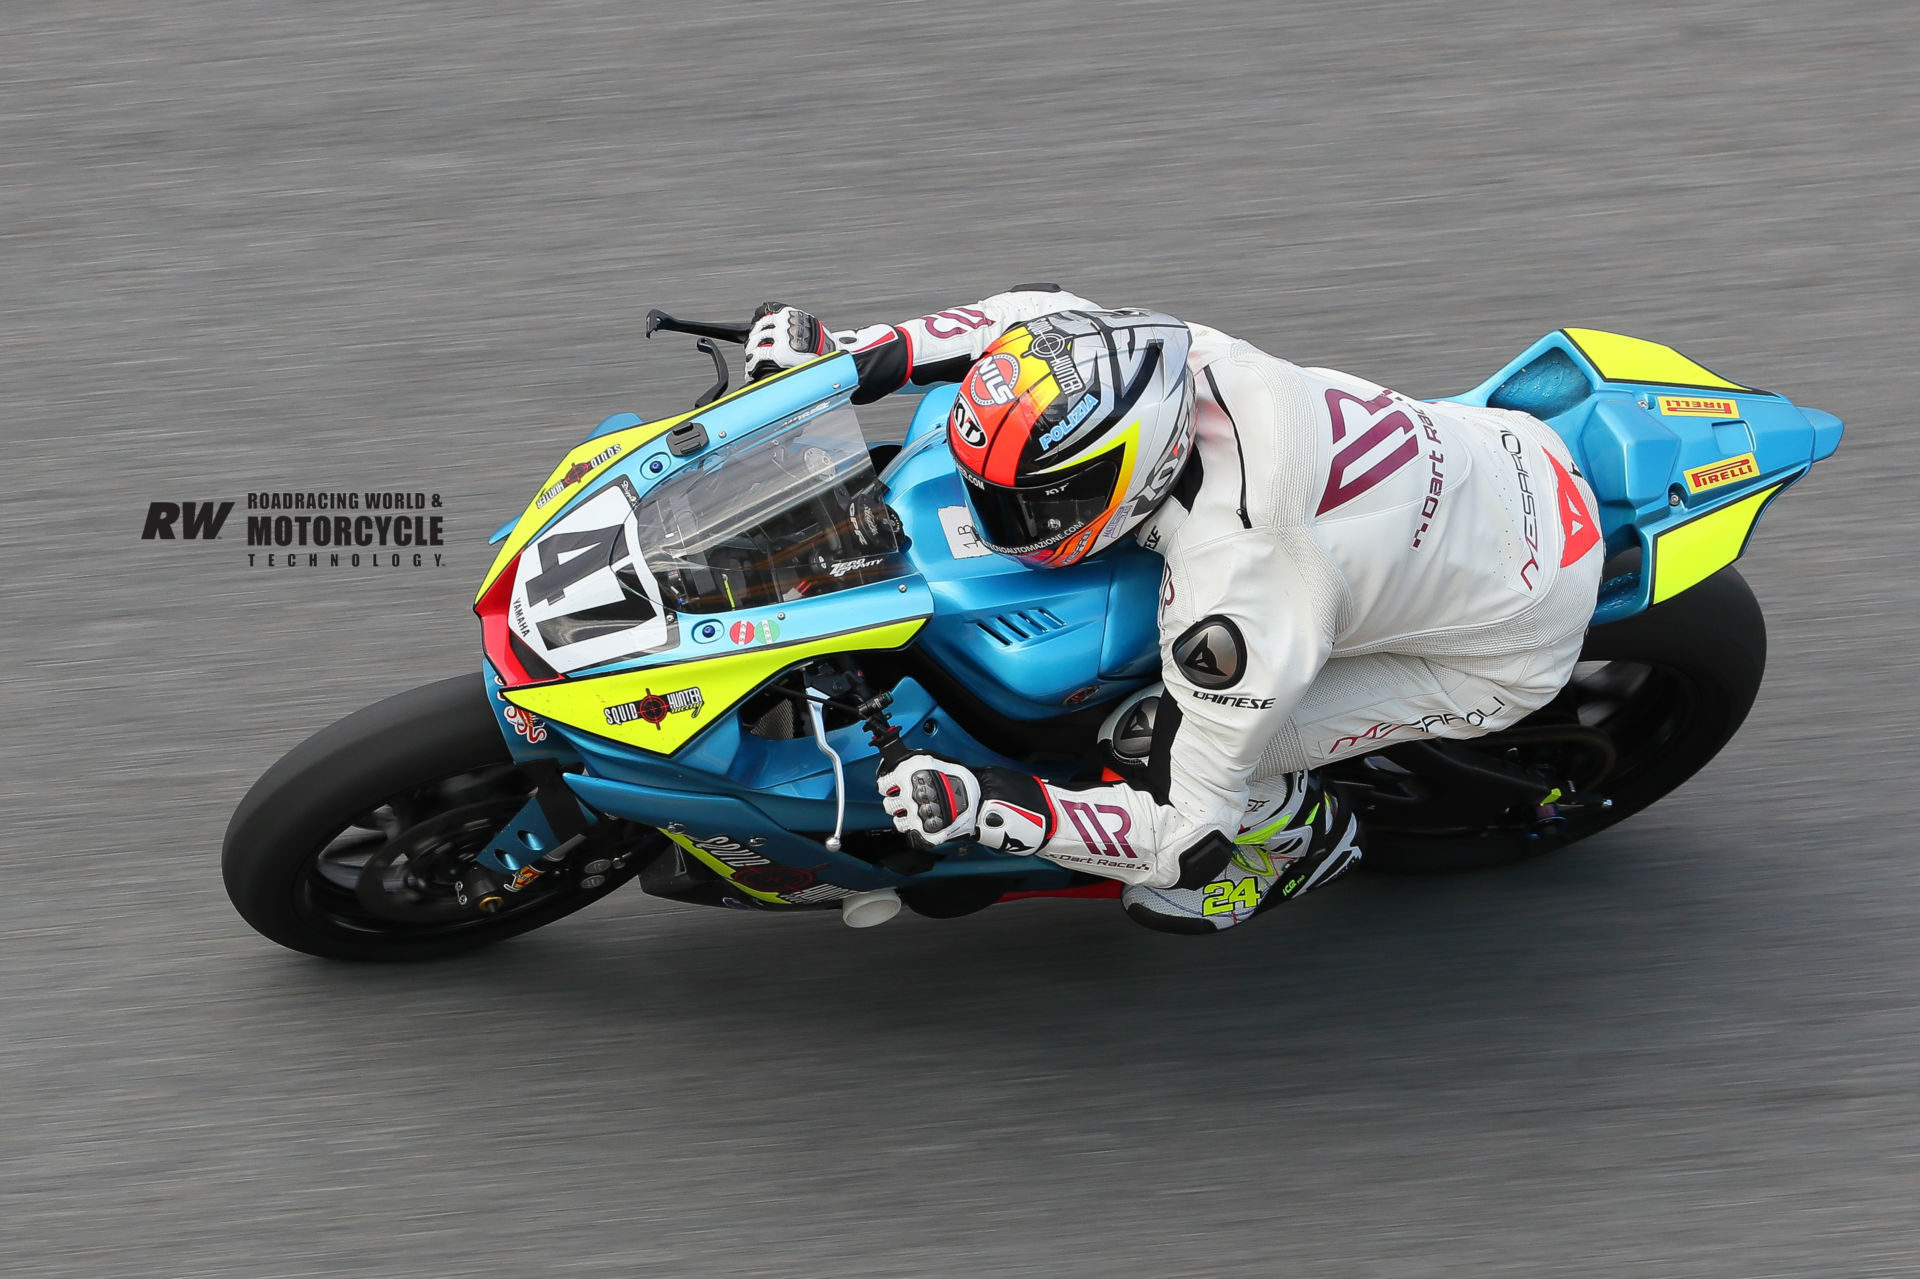 Simone Corsi (47) tucked in on the Squid Hunter Racing Yamaha YZF-R6 on the banking at Daytona International Speedway. Photo by Brian J. Nelson.